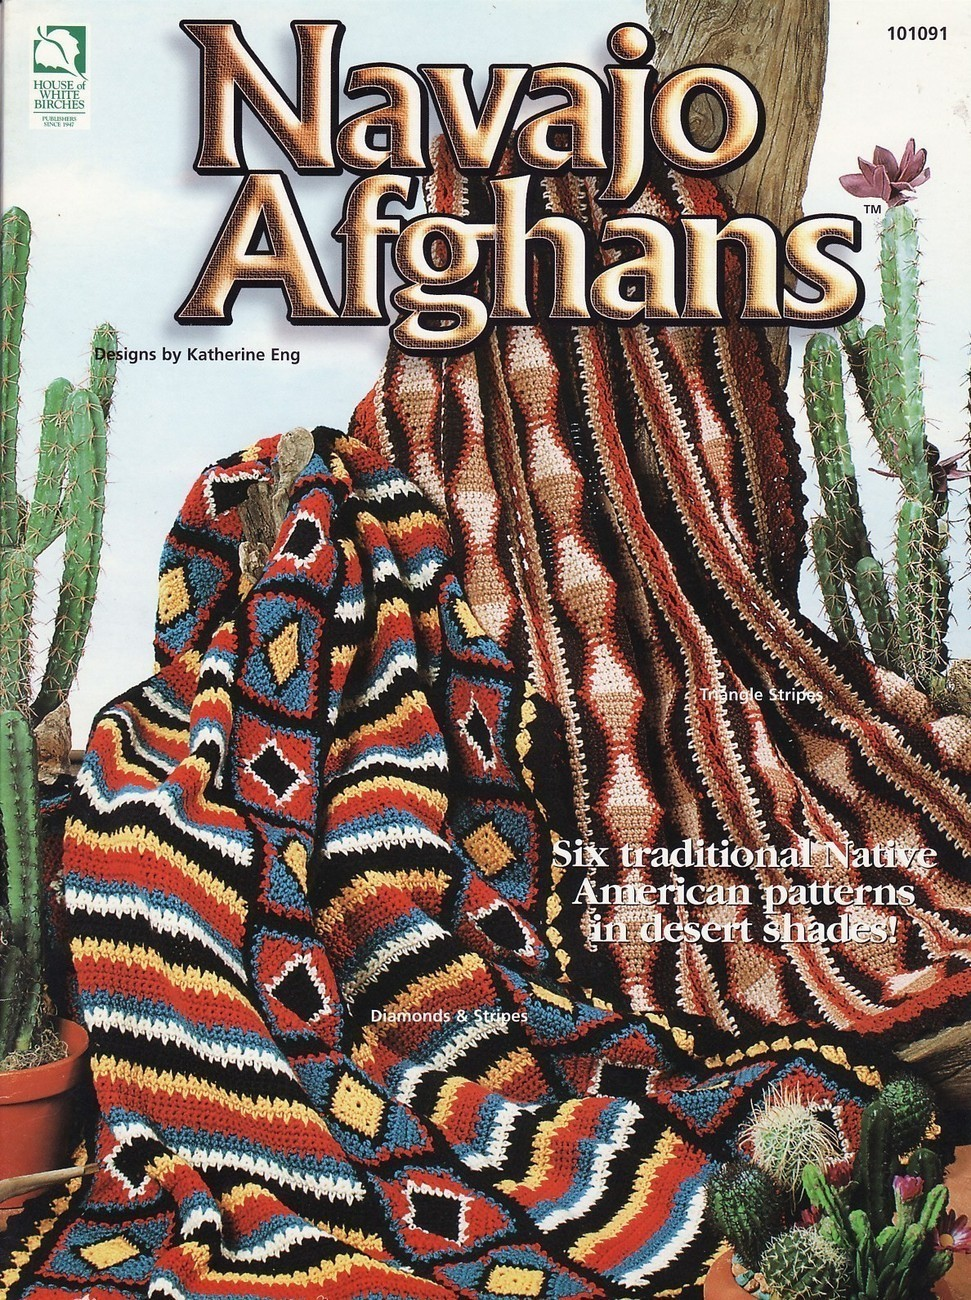 AFGHAN CROCHET NAVAJO PATTERN FREE PATTERNS